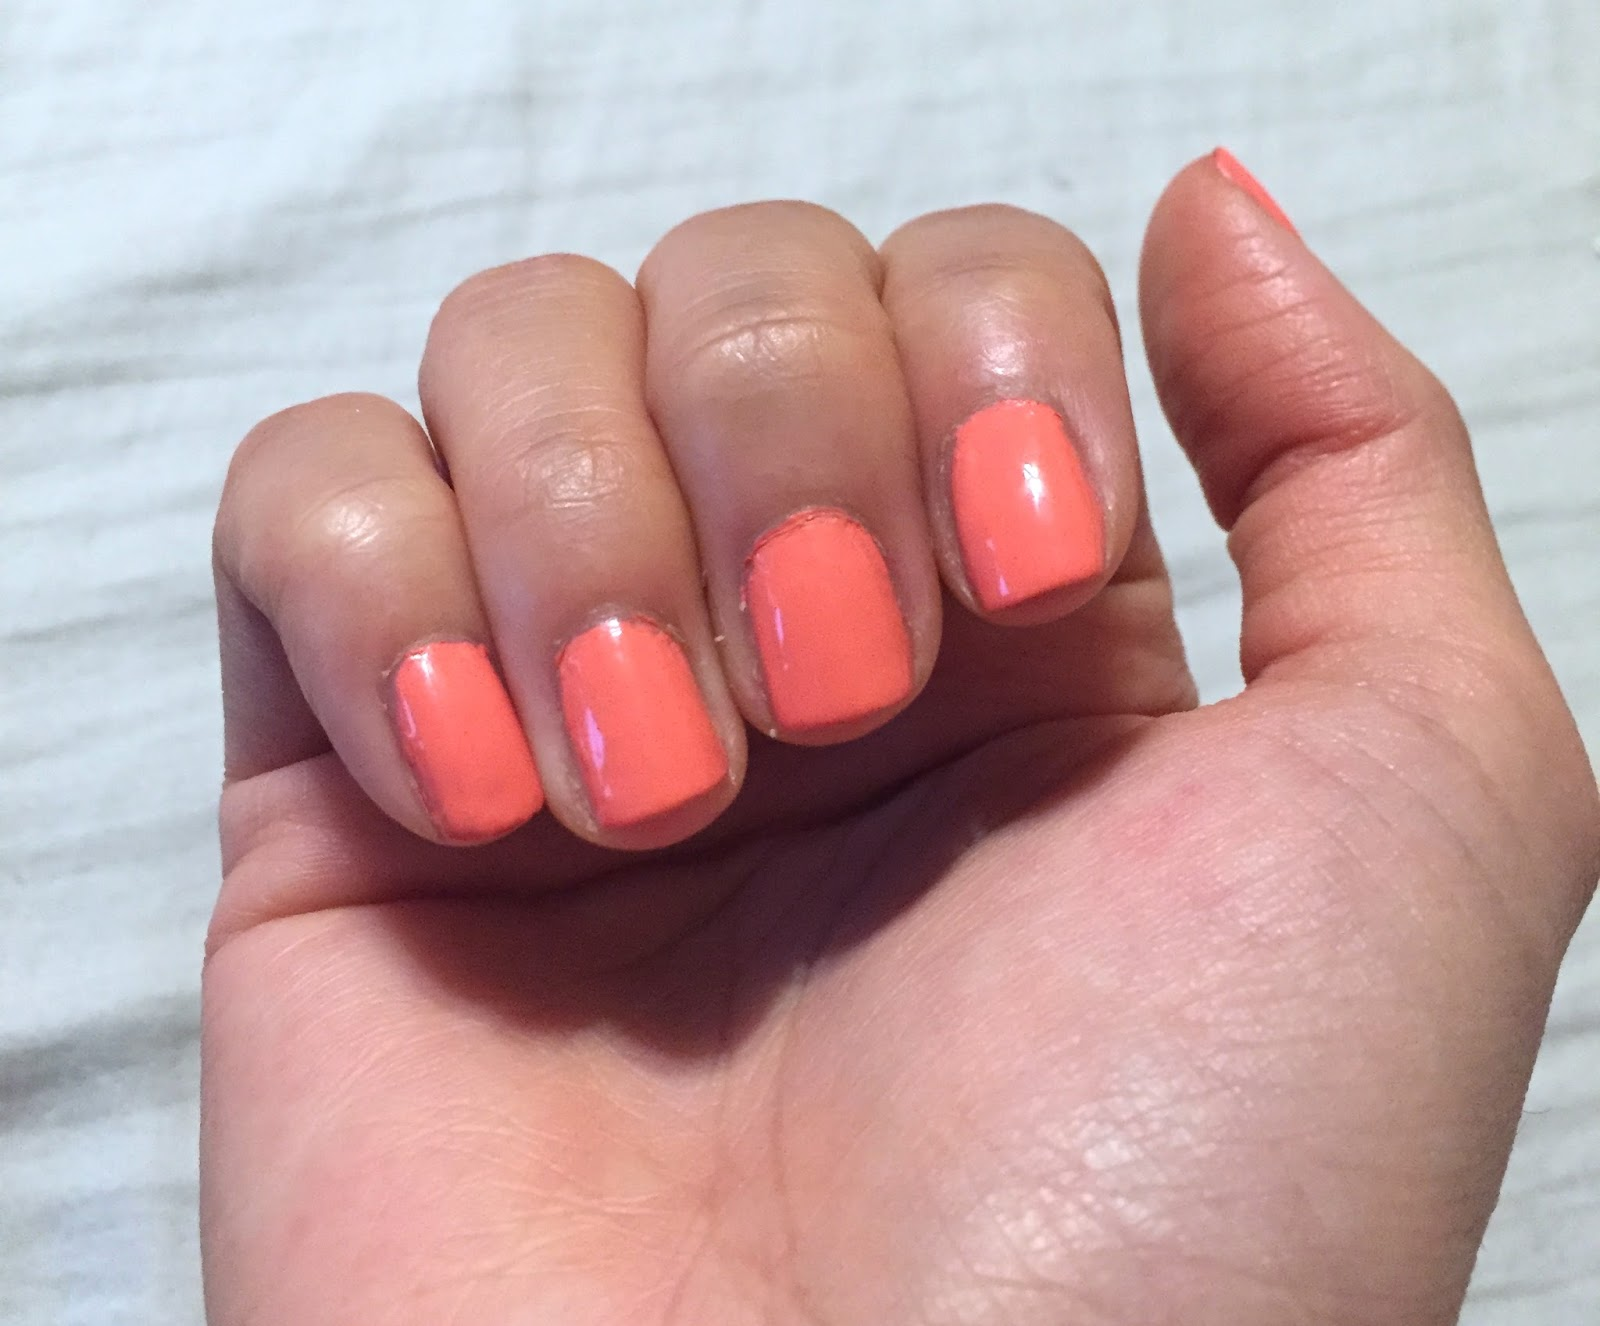 Do it yourself essie nail kit tiffany xoxo the essie gel setter is good but i dont know if i would repurchase it chipped after 6 days and is nowhere as near long lasting as doing gel nails in a solutioingenieria Gallery